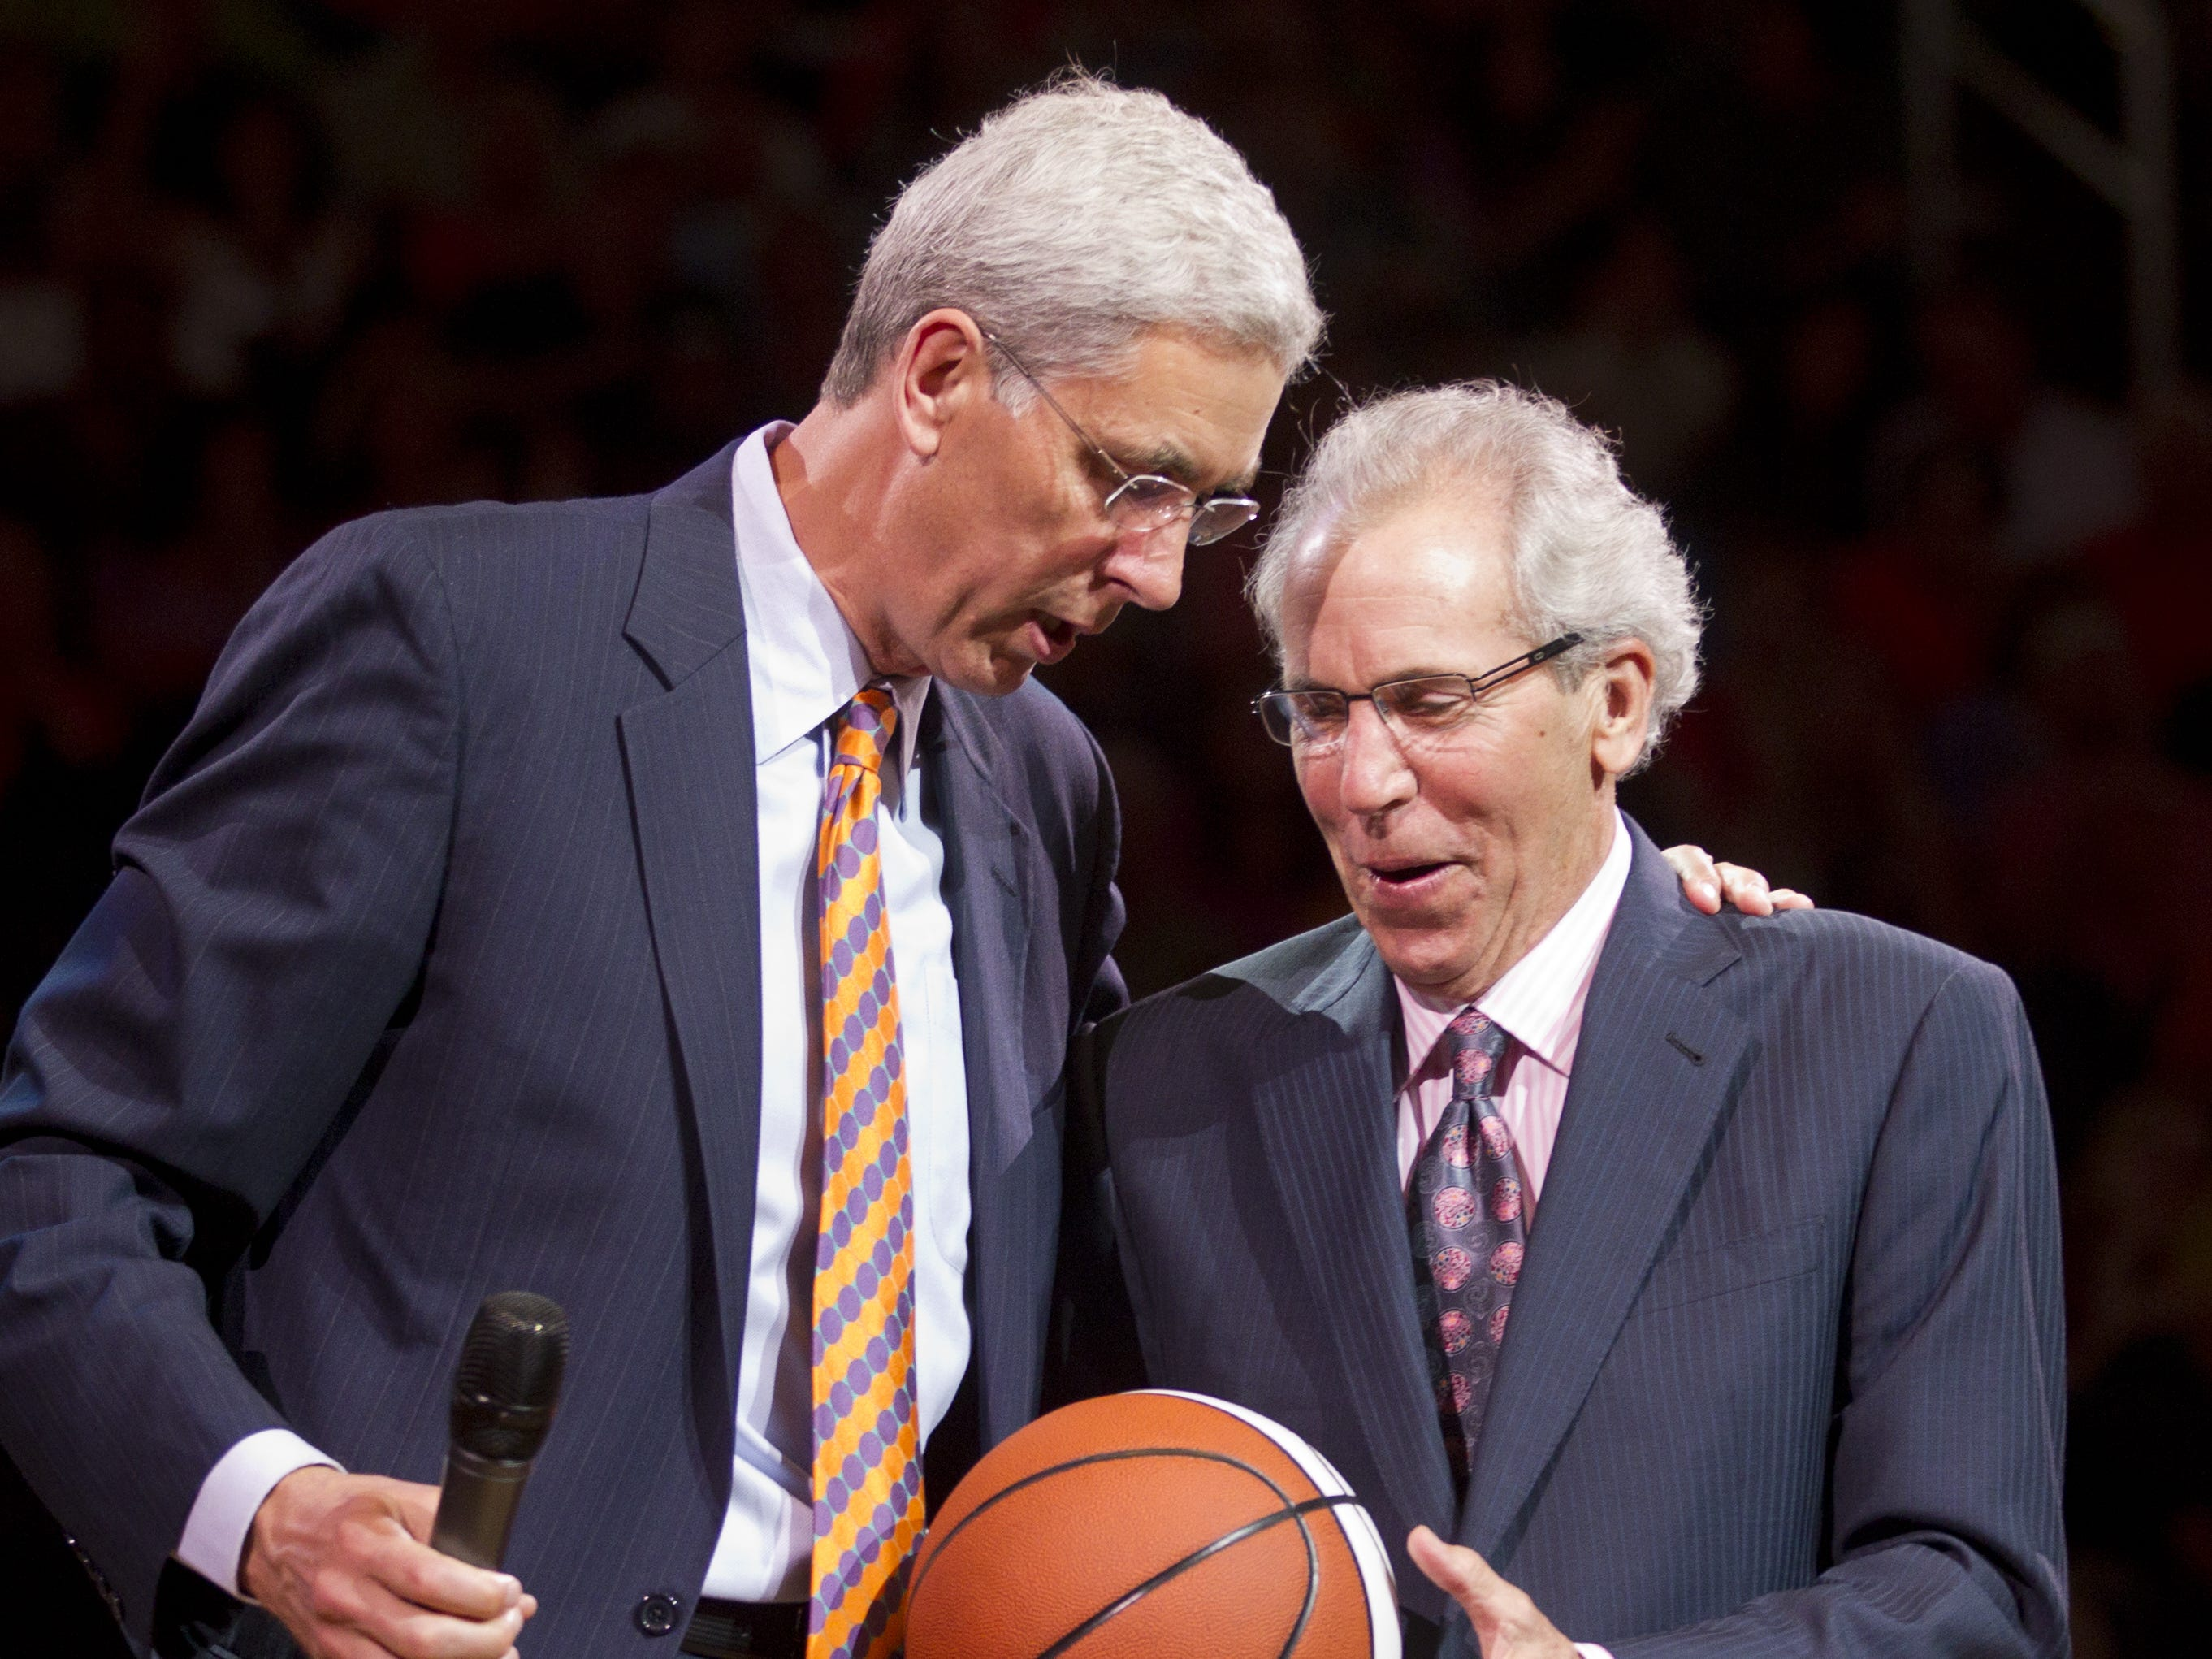 Former Suns head coach John MacLeod (right) is presented a gift by former player Alvin Adams during halftime induction ceremonies to the team's Ring of Honor in 2012.